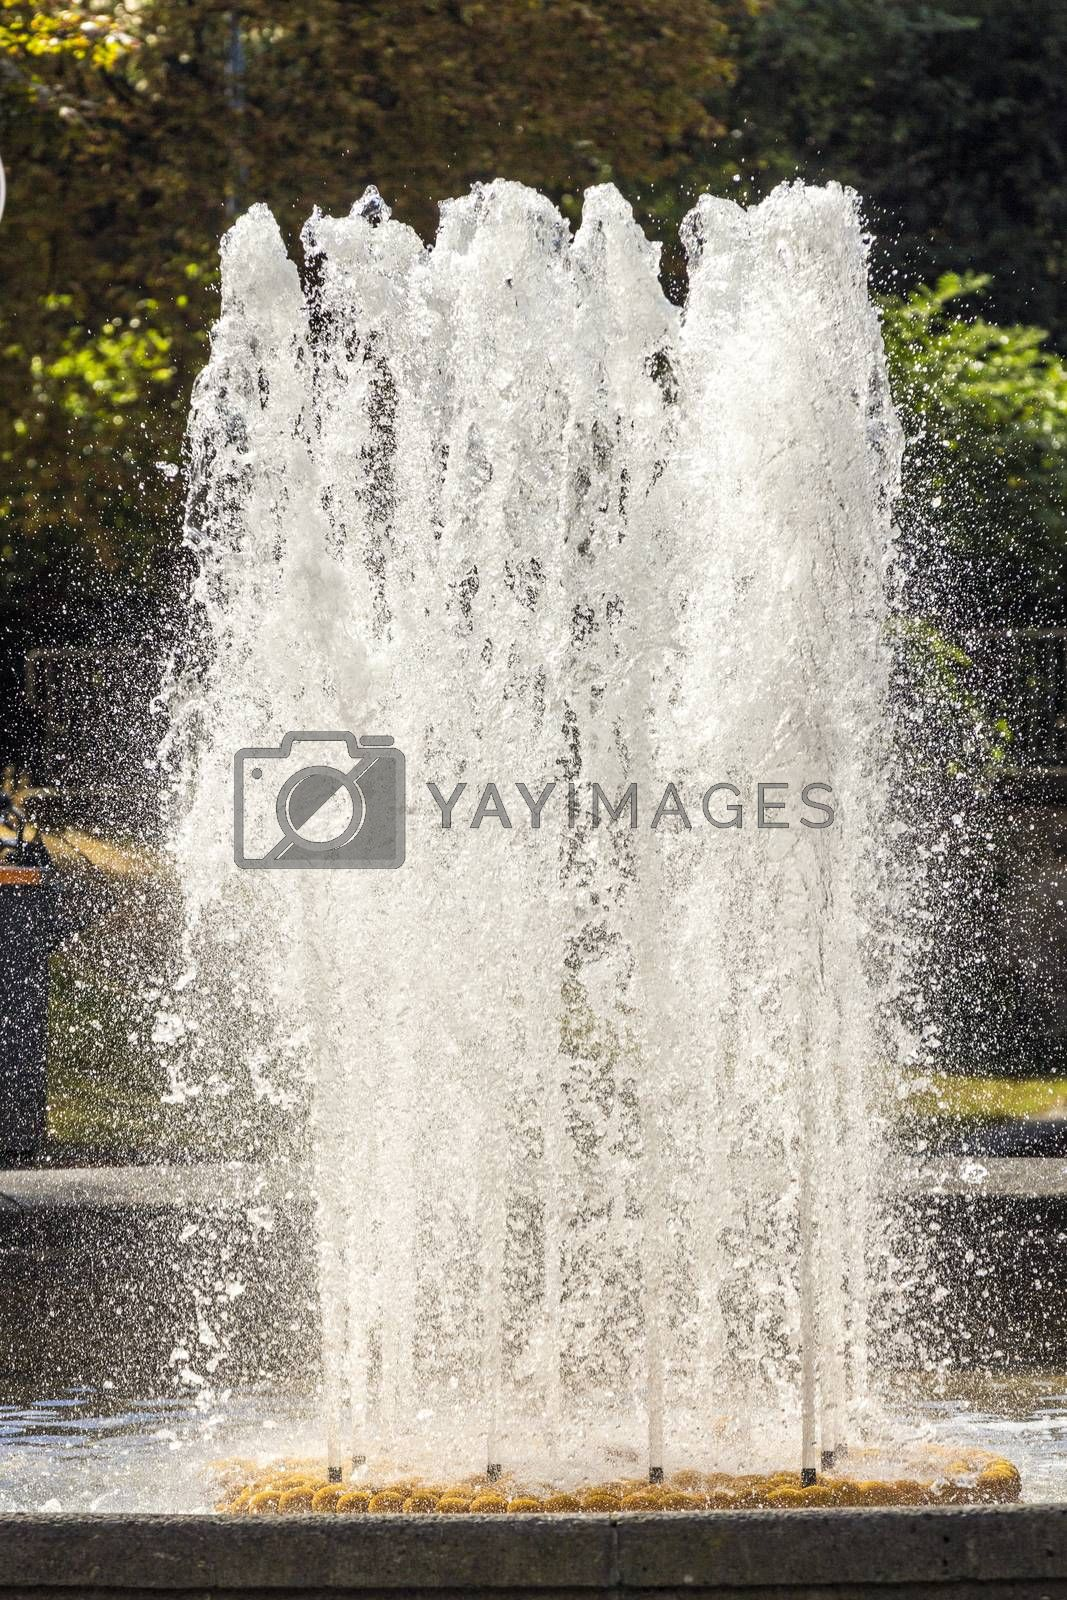 Royalty free image of detail of water fountain by meinzahn